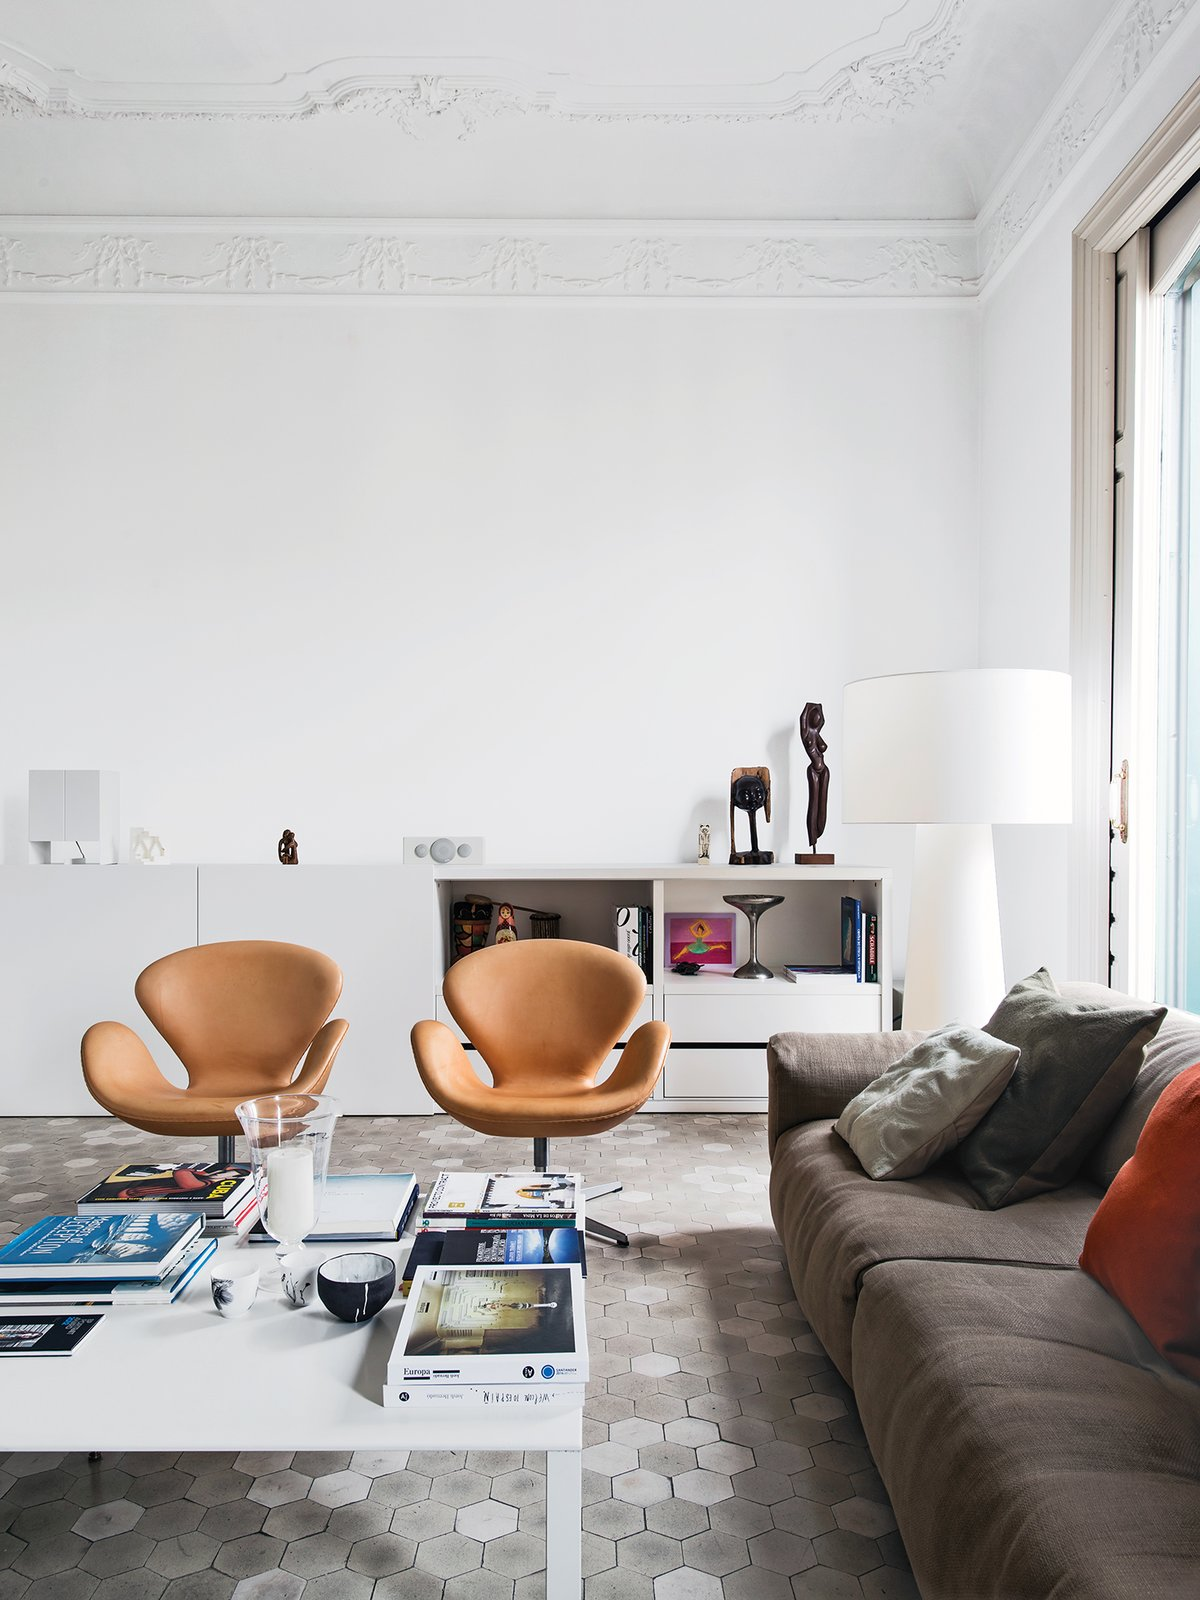 In the living room of the Barcelona apartment designer Elina Vila D'Acosta-Calheiros shares with her husband, Ginés Gorriz, Arne Jacobsen Swan chairs join a sofa by Piero Lissoni for Living Divani. The cabinet is from Cappellini, as is the Marcel Wanders Big Shadow lamp. Tagged: Living Room, Chair, Sofa, and Coffee Tables.  Photo 10 of 13 in 12 Creative Ways to Use Tile in Your Home from Meet Marcel Wanders, 2015 Dwell on Design Keynote Speaker